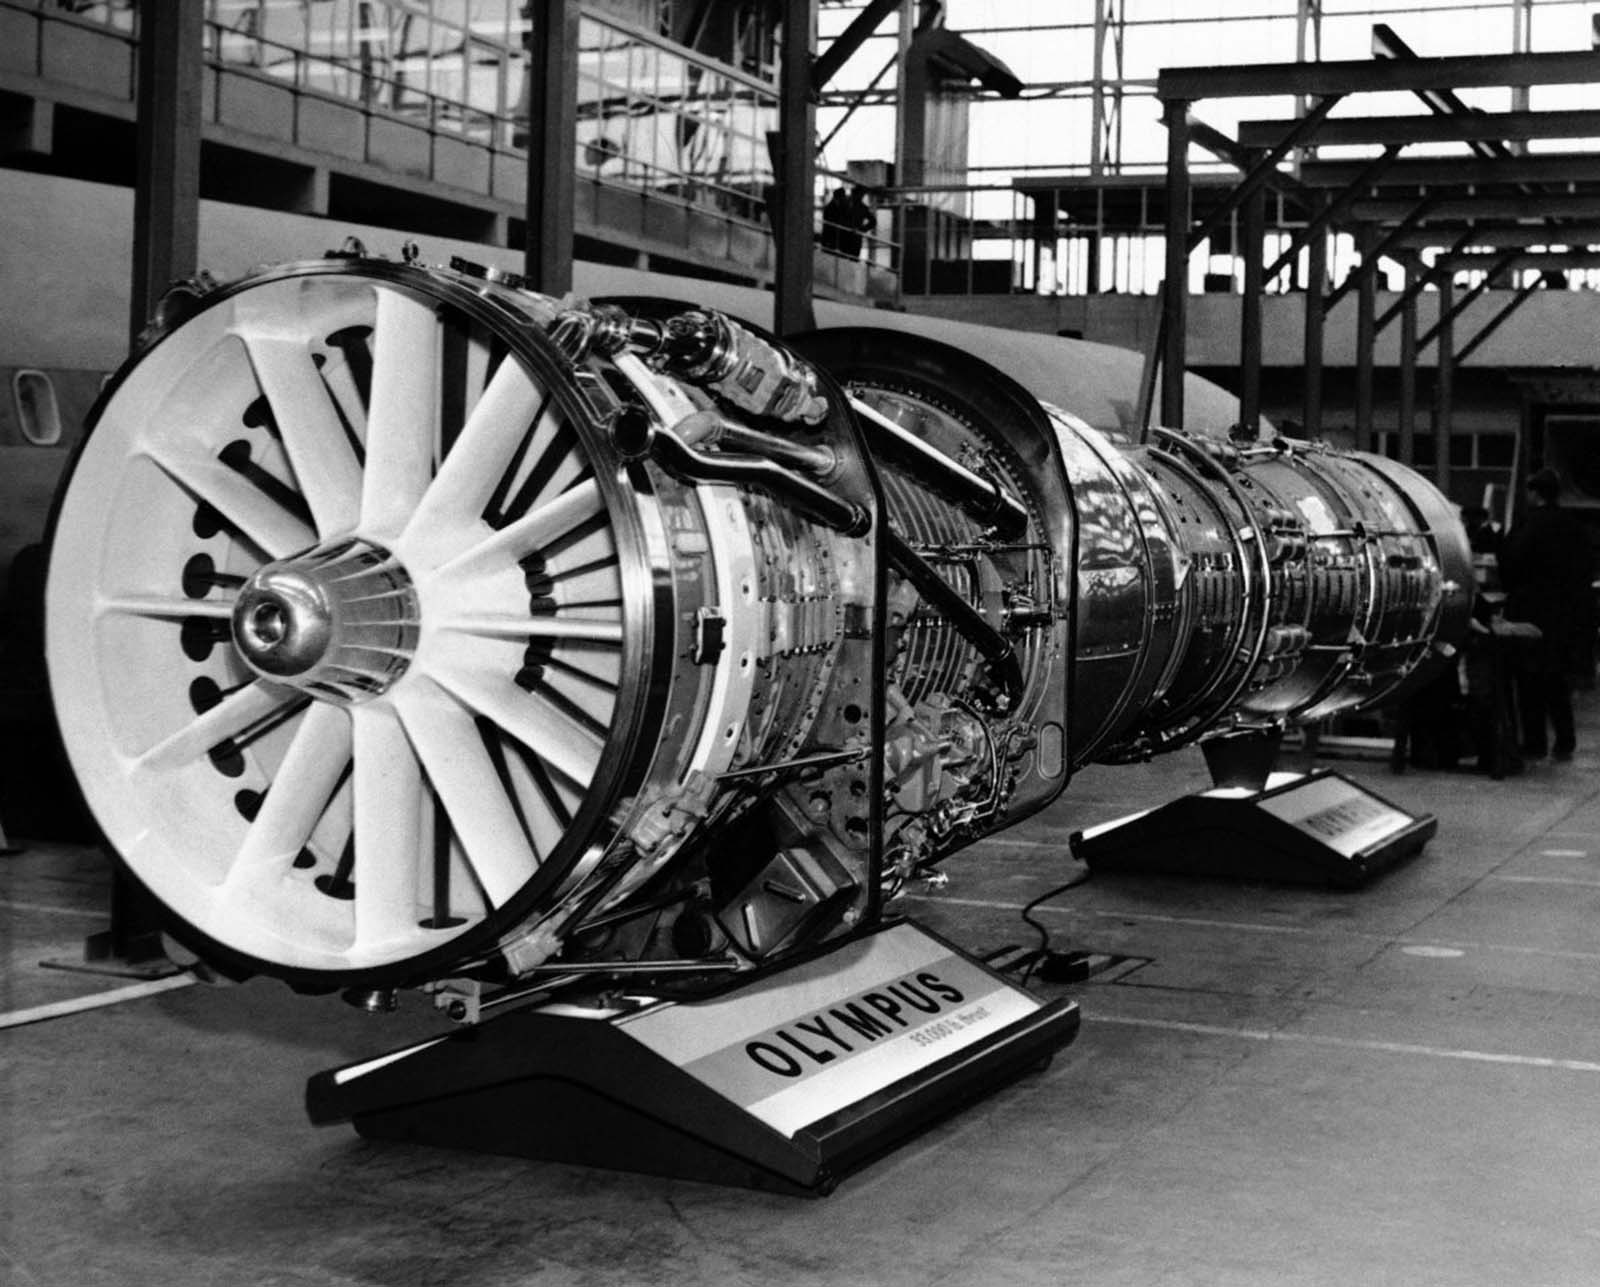 The engine selected to power the Concorde was the Olympus 593 turbojet, developed by Rolls-Royce/Bristol Siddeley and Snecma.